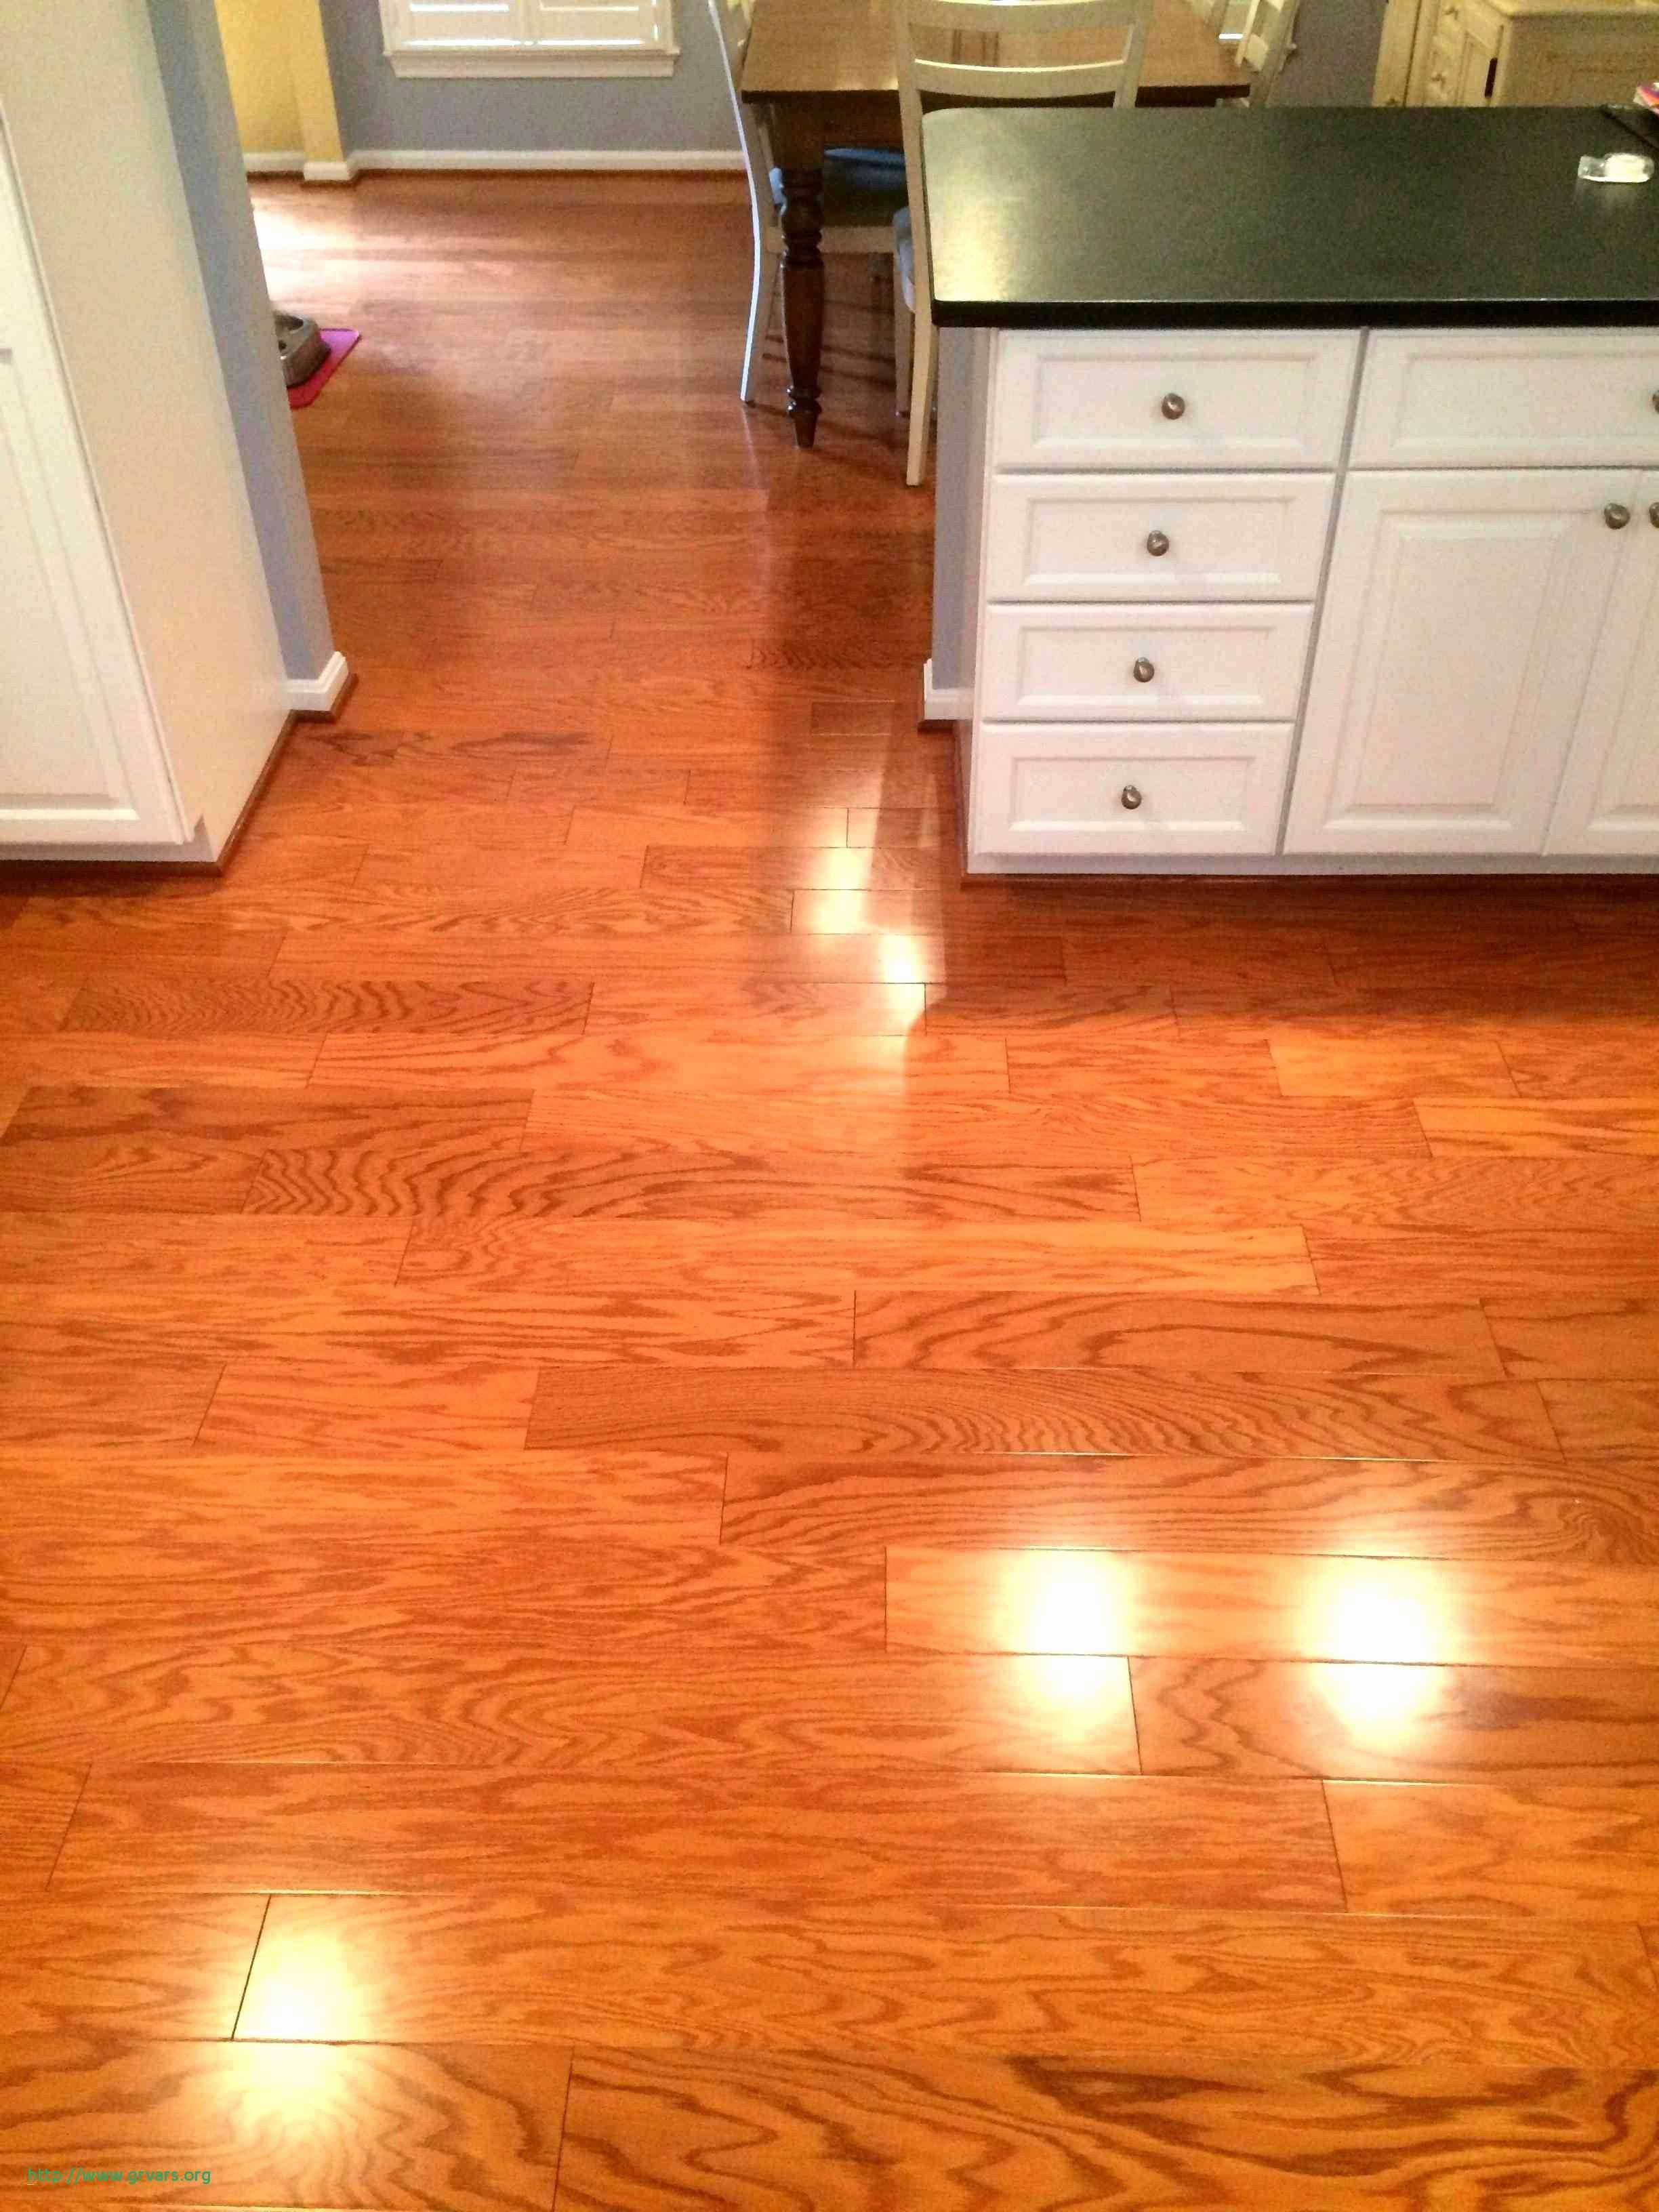 hardwood flooring hickory nc of 20 hardwood flooring center hickory nc youll love best flooring ideas pertaining to hardwood flooring center hickory nc new of 16 charmant columbus flooring and more